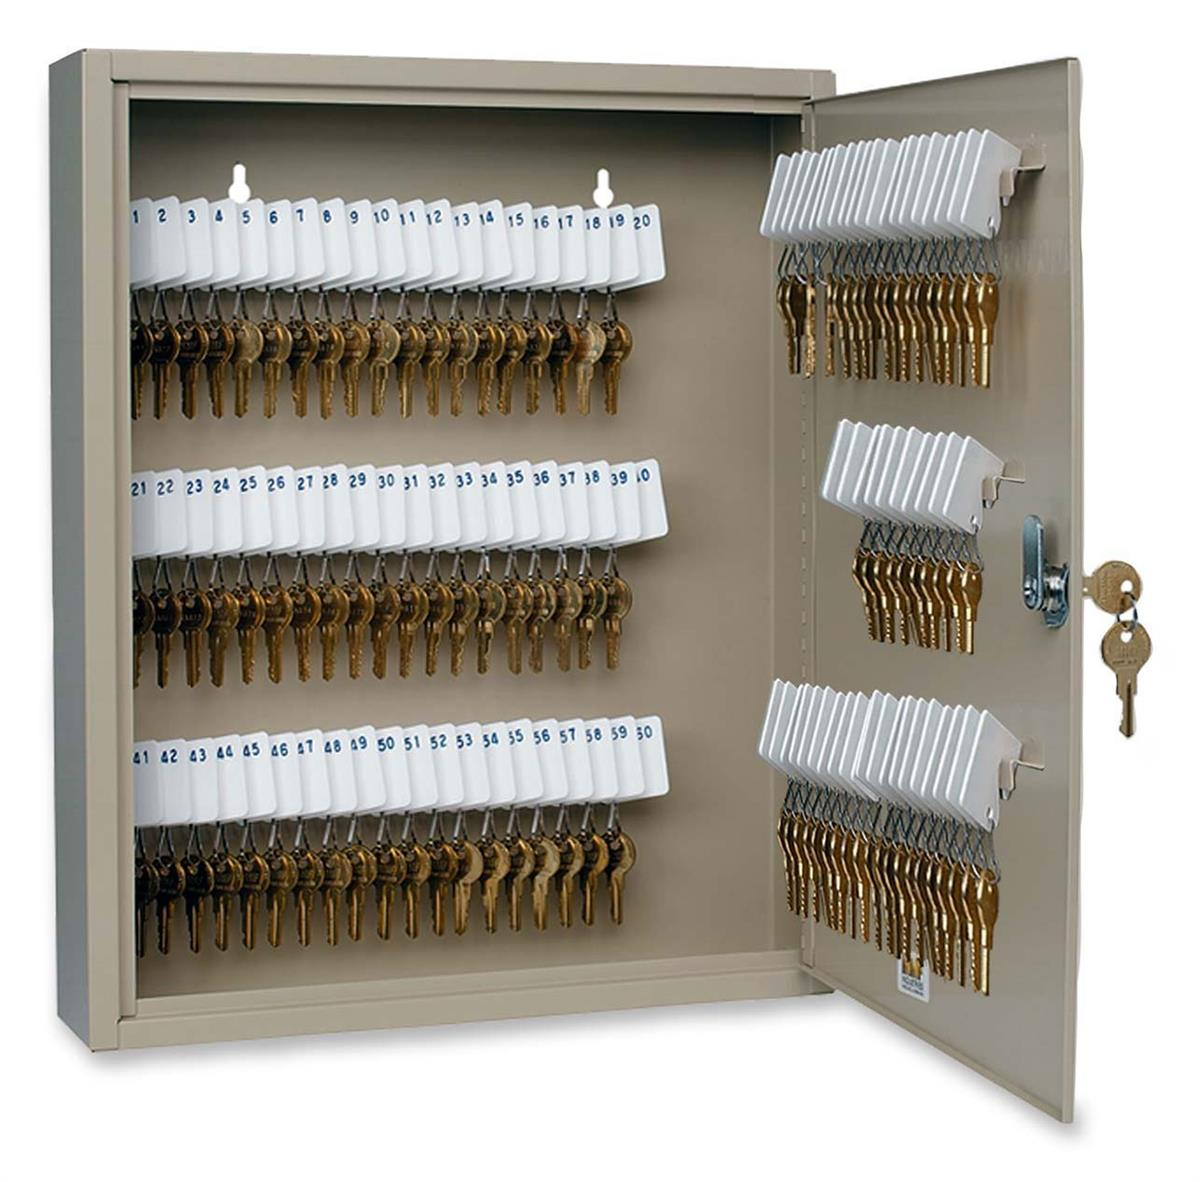 Securikey System 2080 Key Cabi  Fr also 5207 as well Hafele 007 91 180 likewise Howard Miller Piedmont III 690 007 Curio Cabi besides Brighten Up Any Workspace With A New Limited Edition Tool Chest From Halfords c9683398. on locking storage cabinet on s